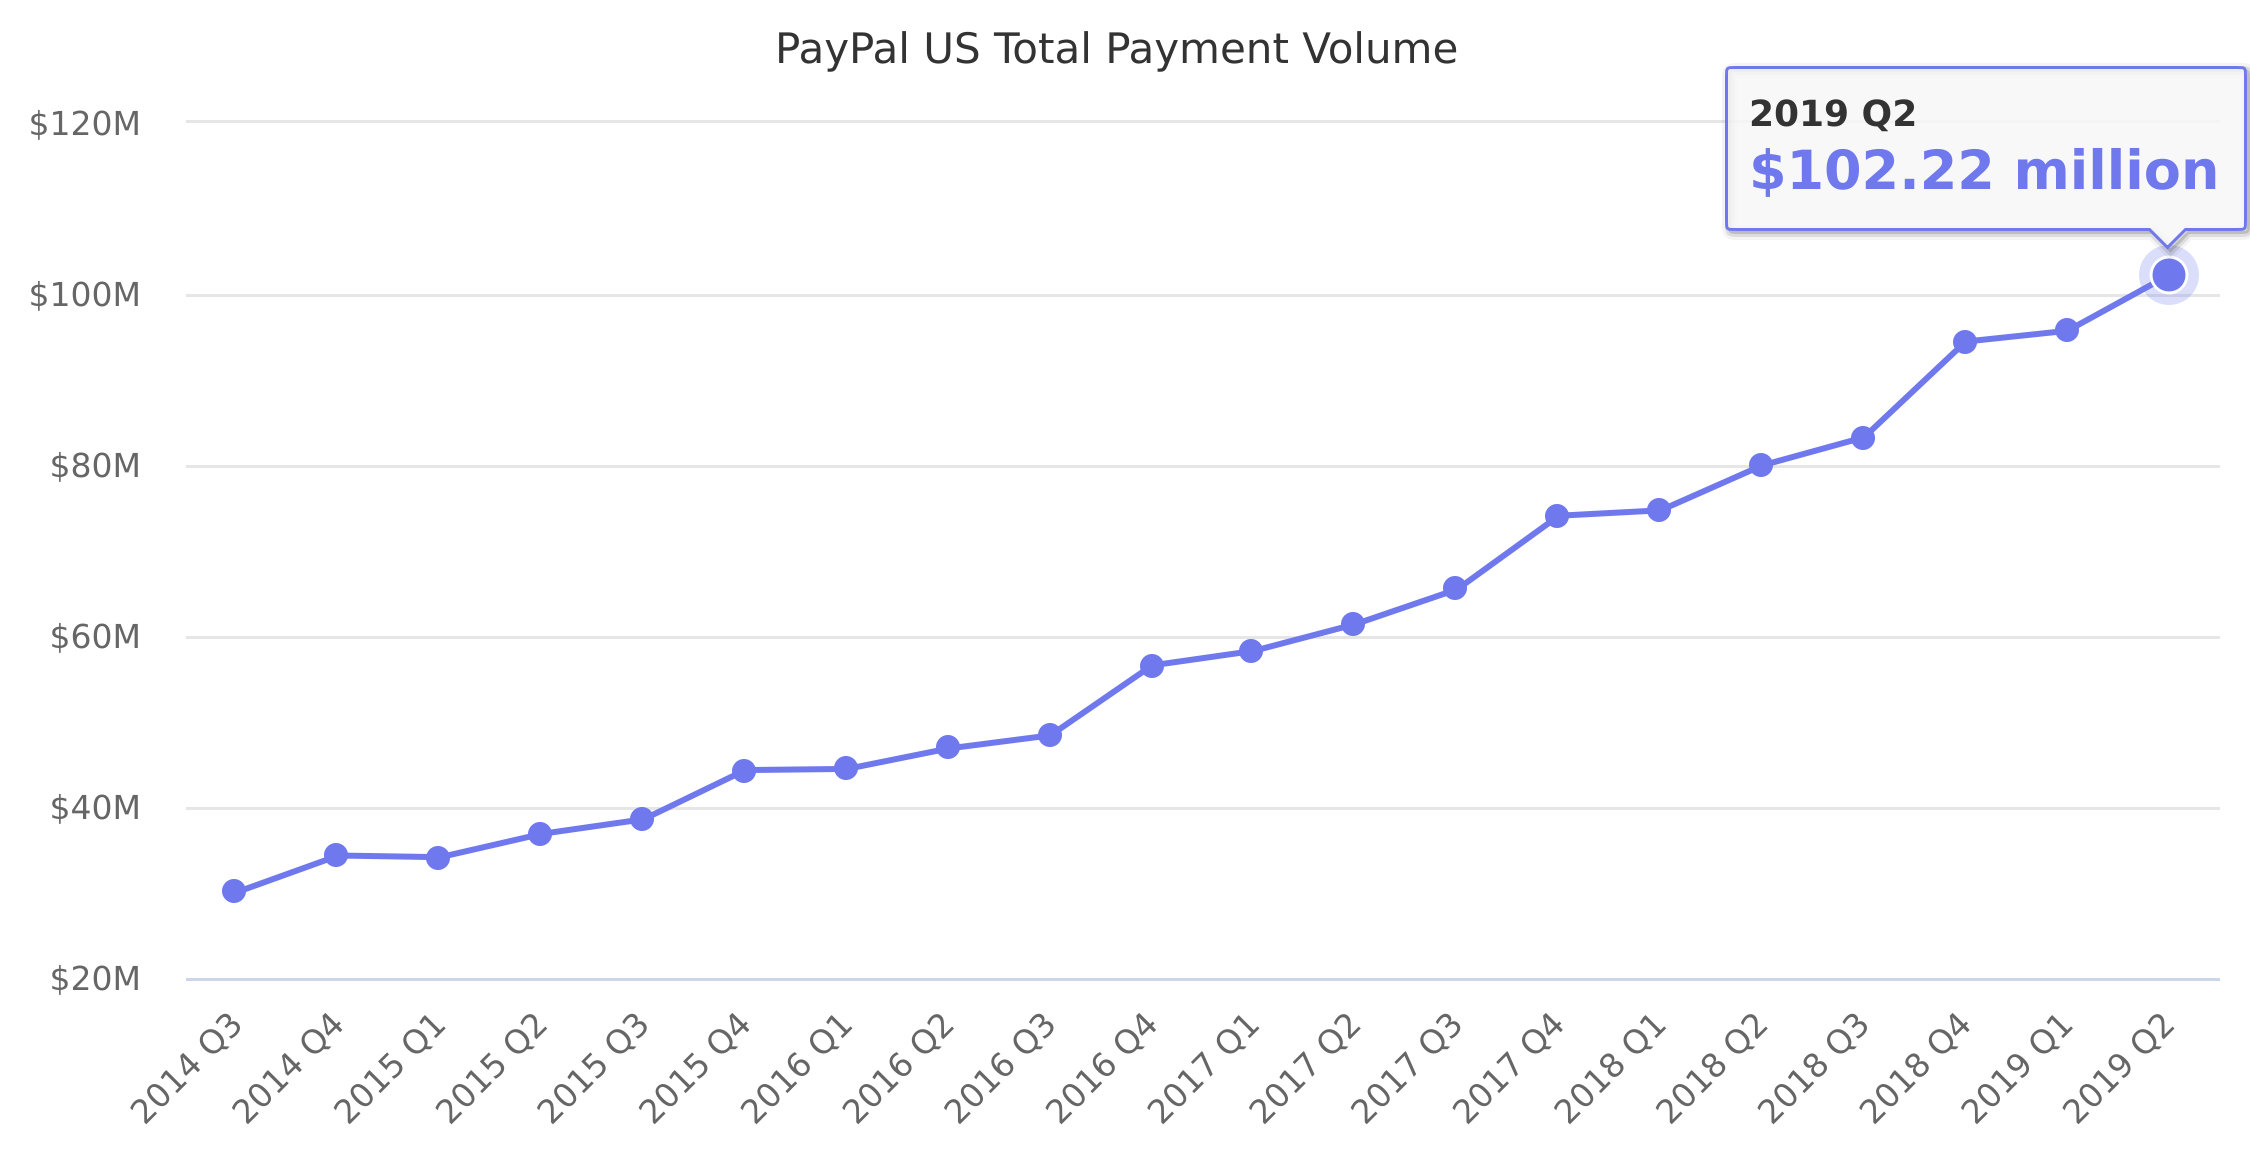 PayPal US Total Payment Volume 2014-2018